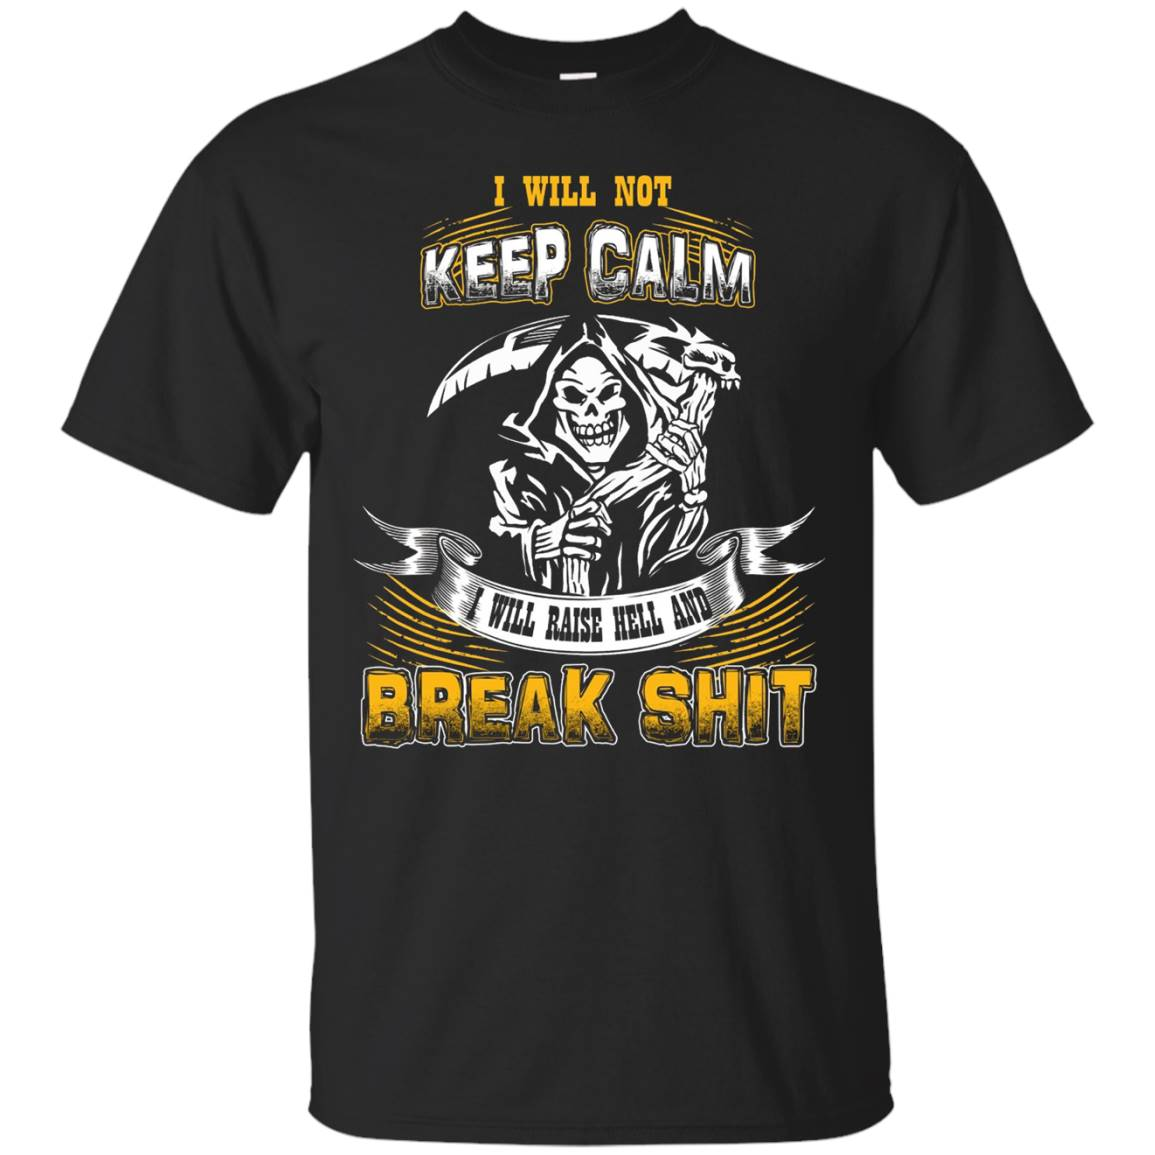 GrimReaperShop – I WILL NOT KEEP CALM. I WILL RAISE HELL …